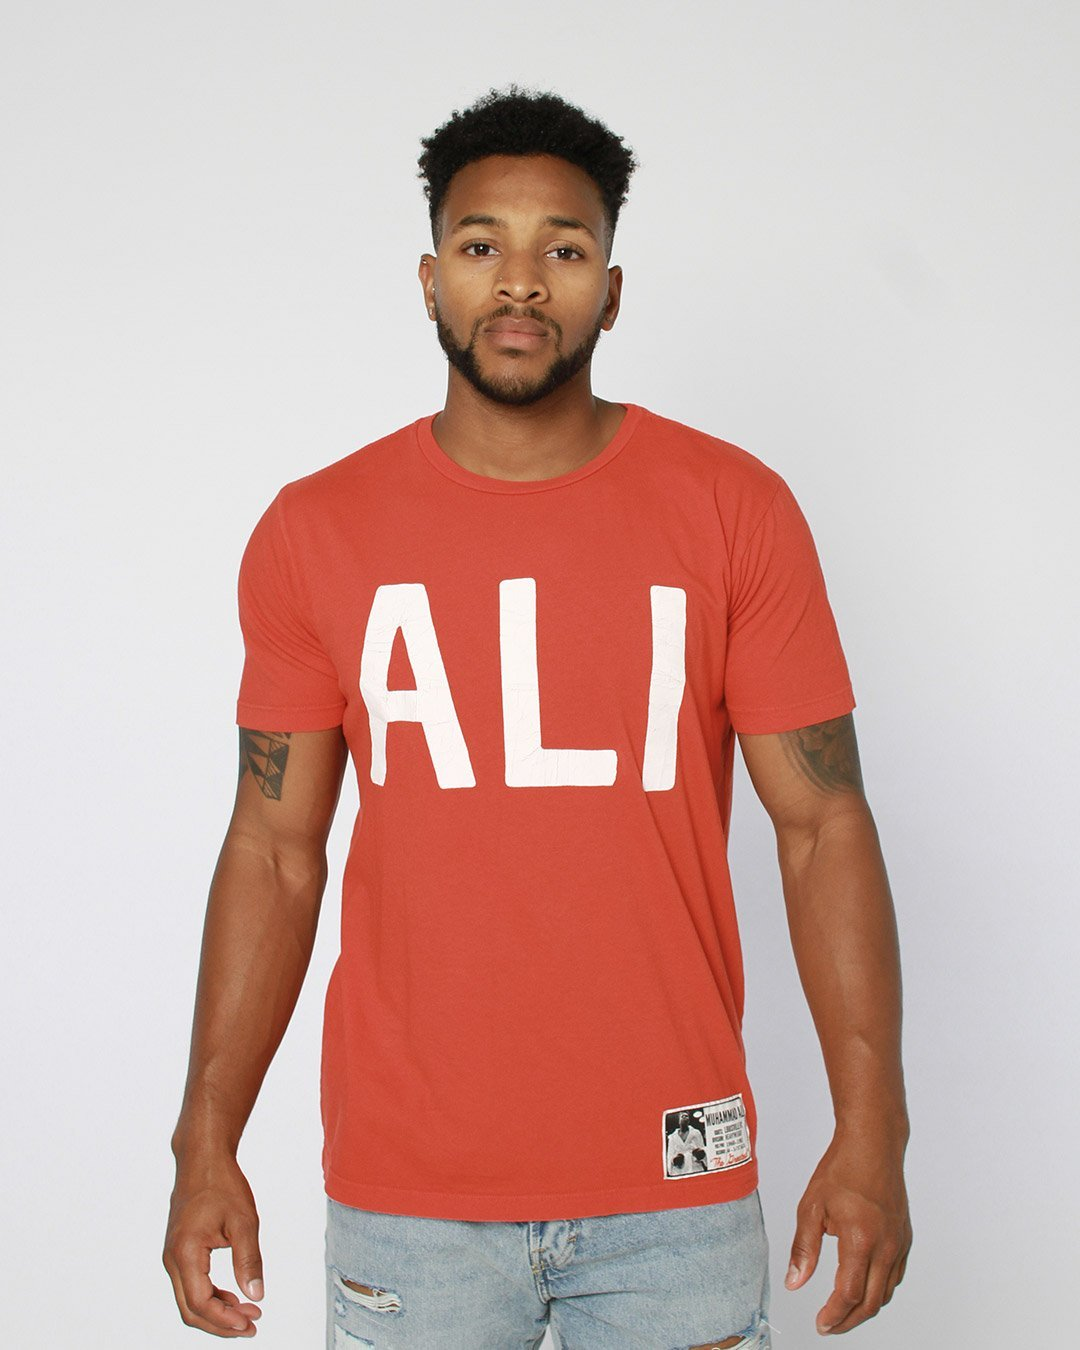 Ali Legacy Tee - Roots of Inc dba Roots of Fight